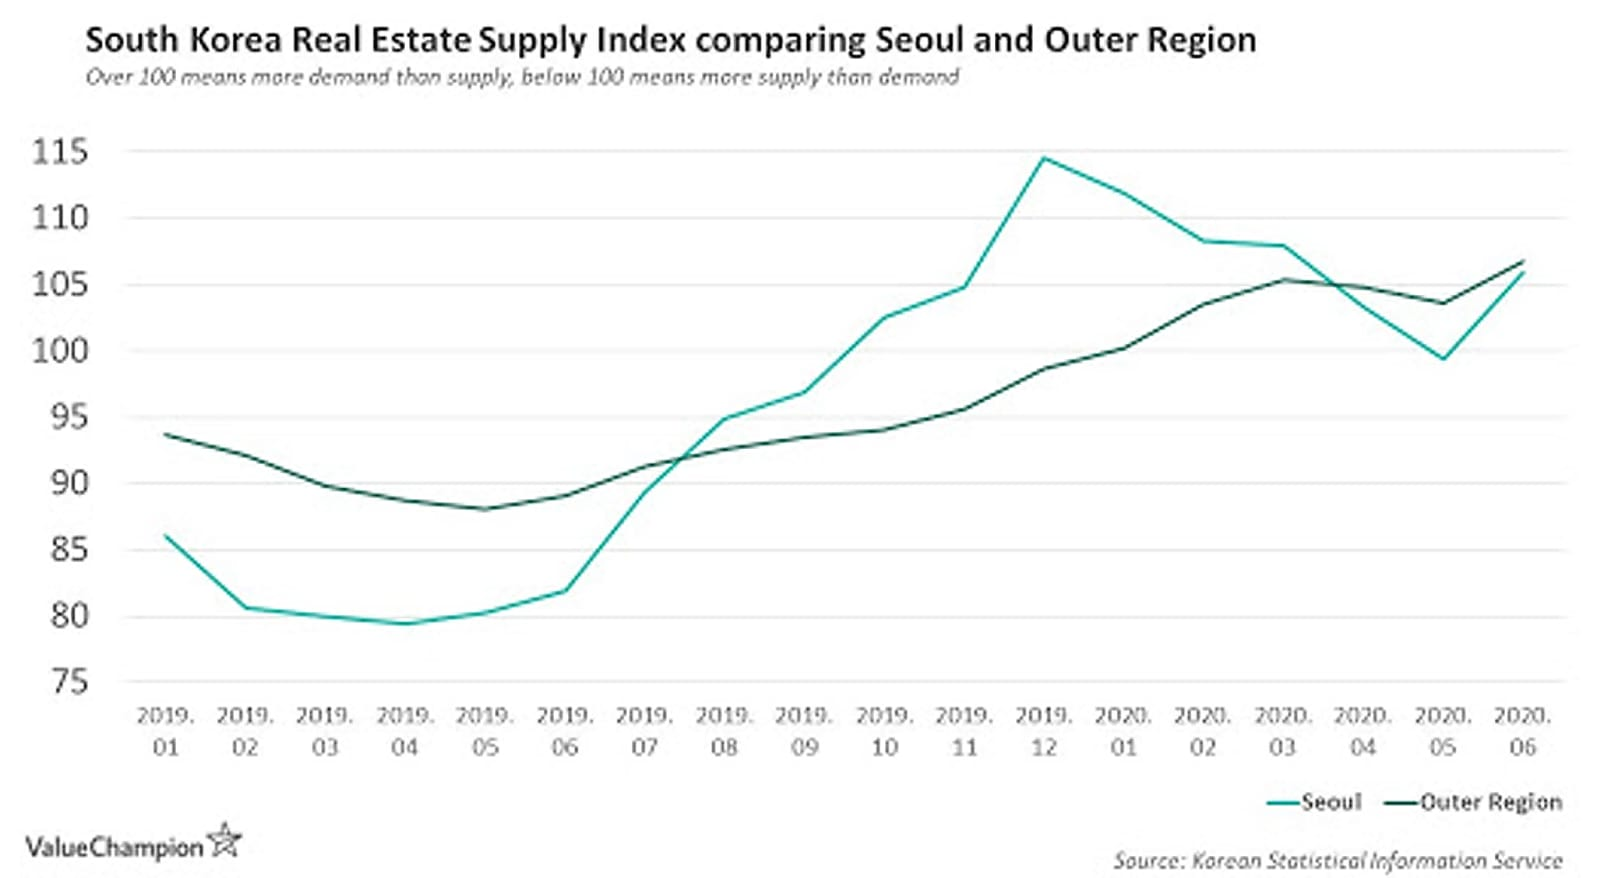 This is a graph that shows the South Korean Real Estate Supply Index Comparing Seoul and Outer Regions